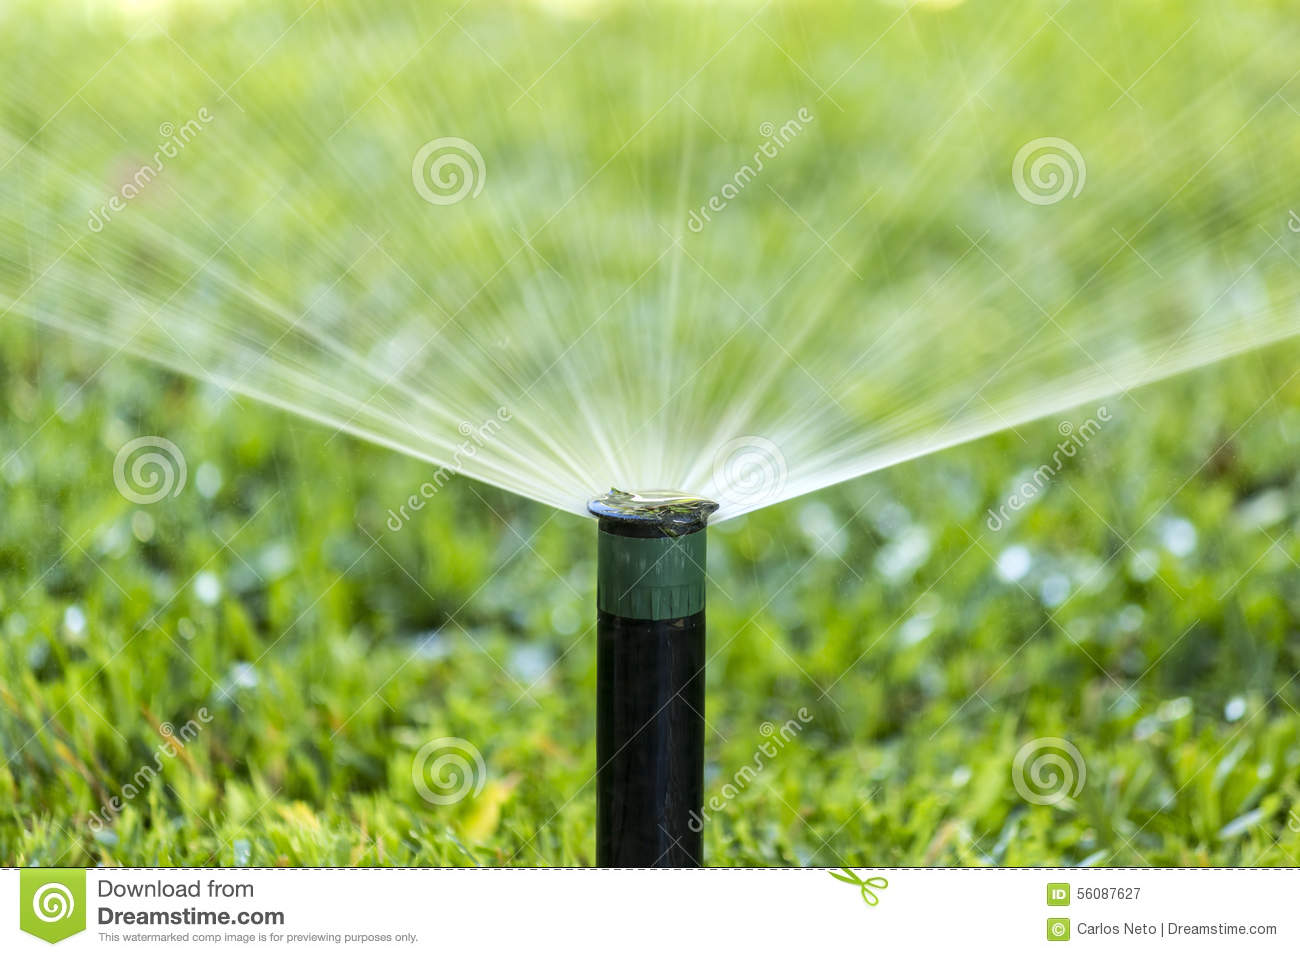 Garden Irrigation System Spray Watering Lawn Stock Photo Image